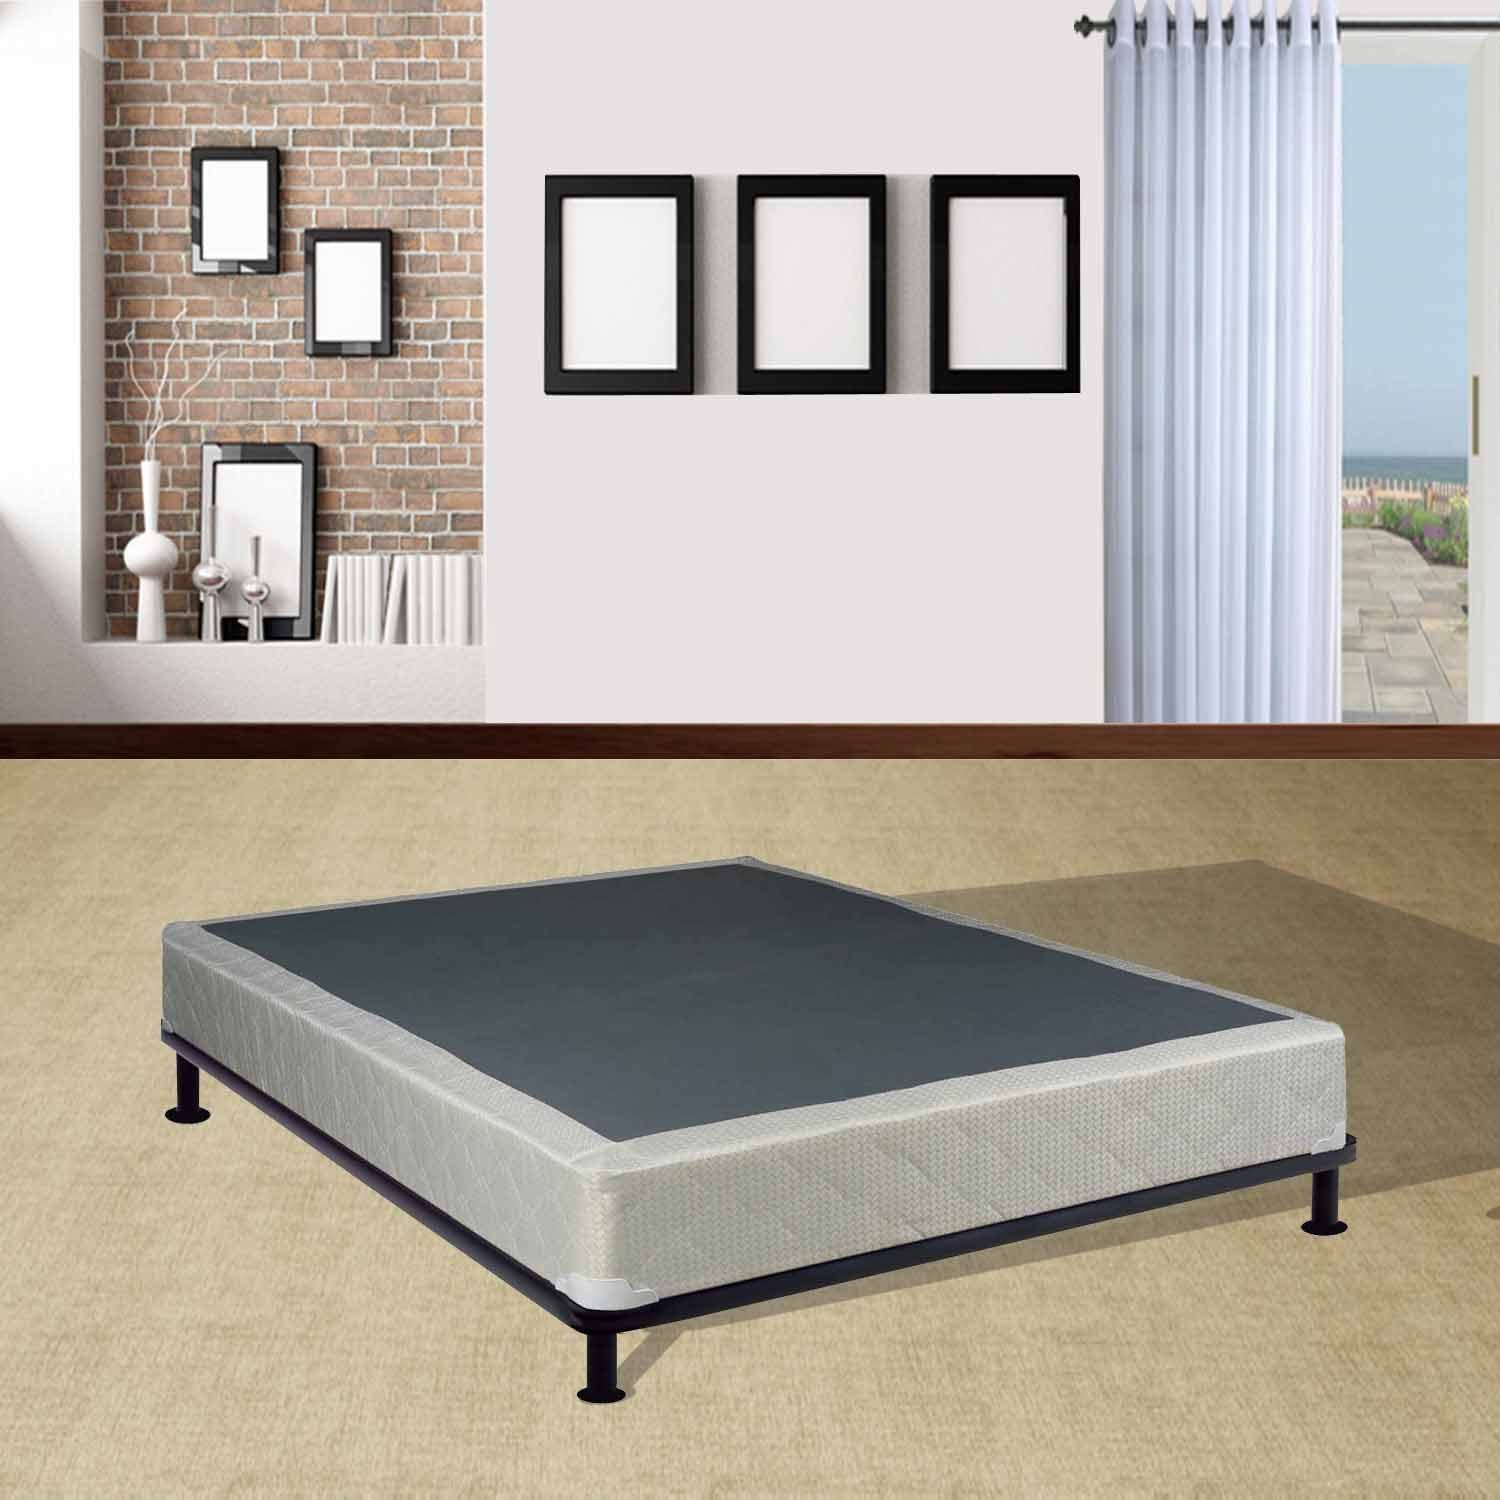 Continental Sleep Fully Assembled Full Box Spring for Mattress, Luxury Collection